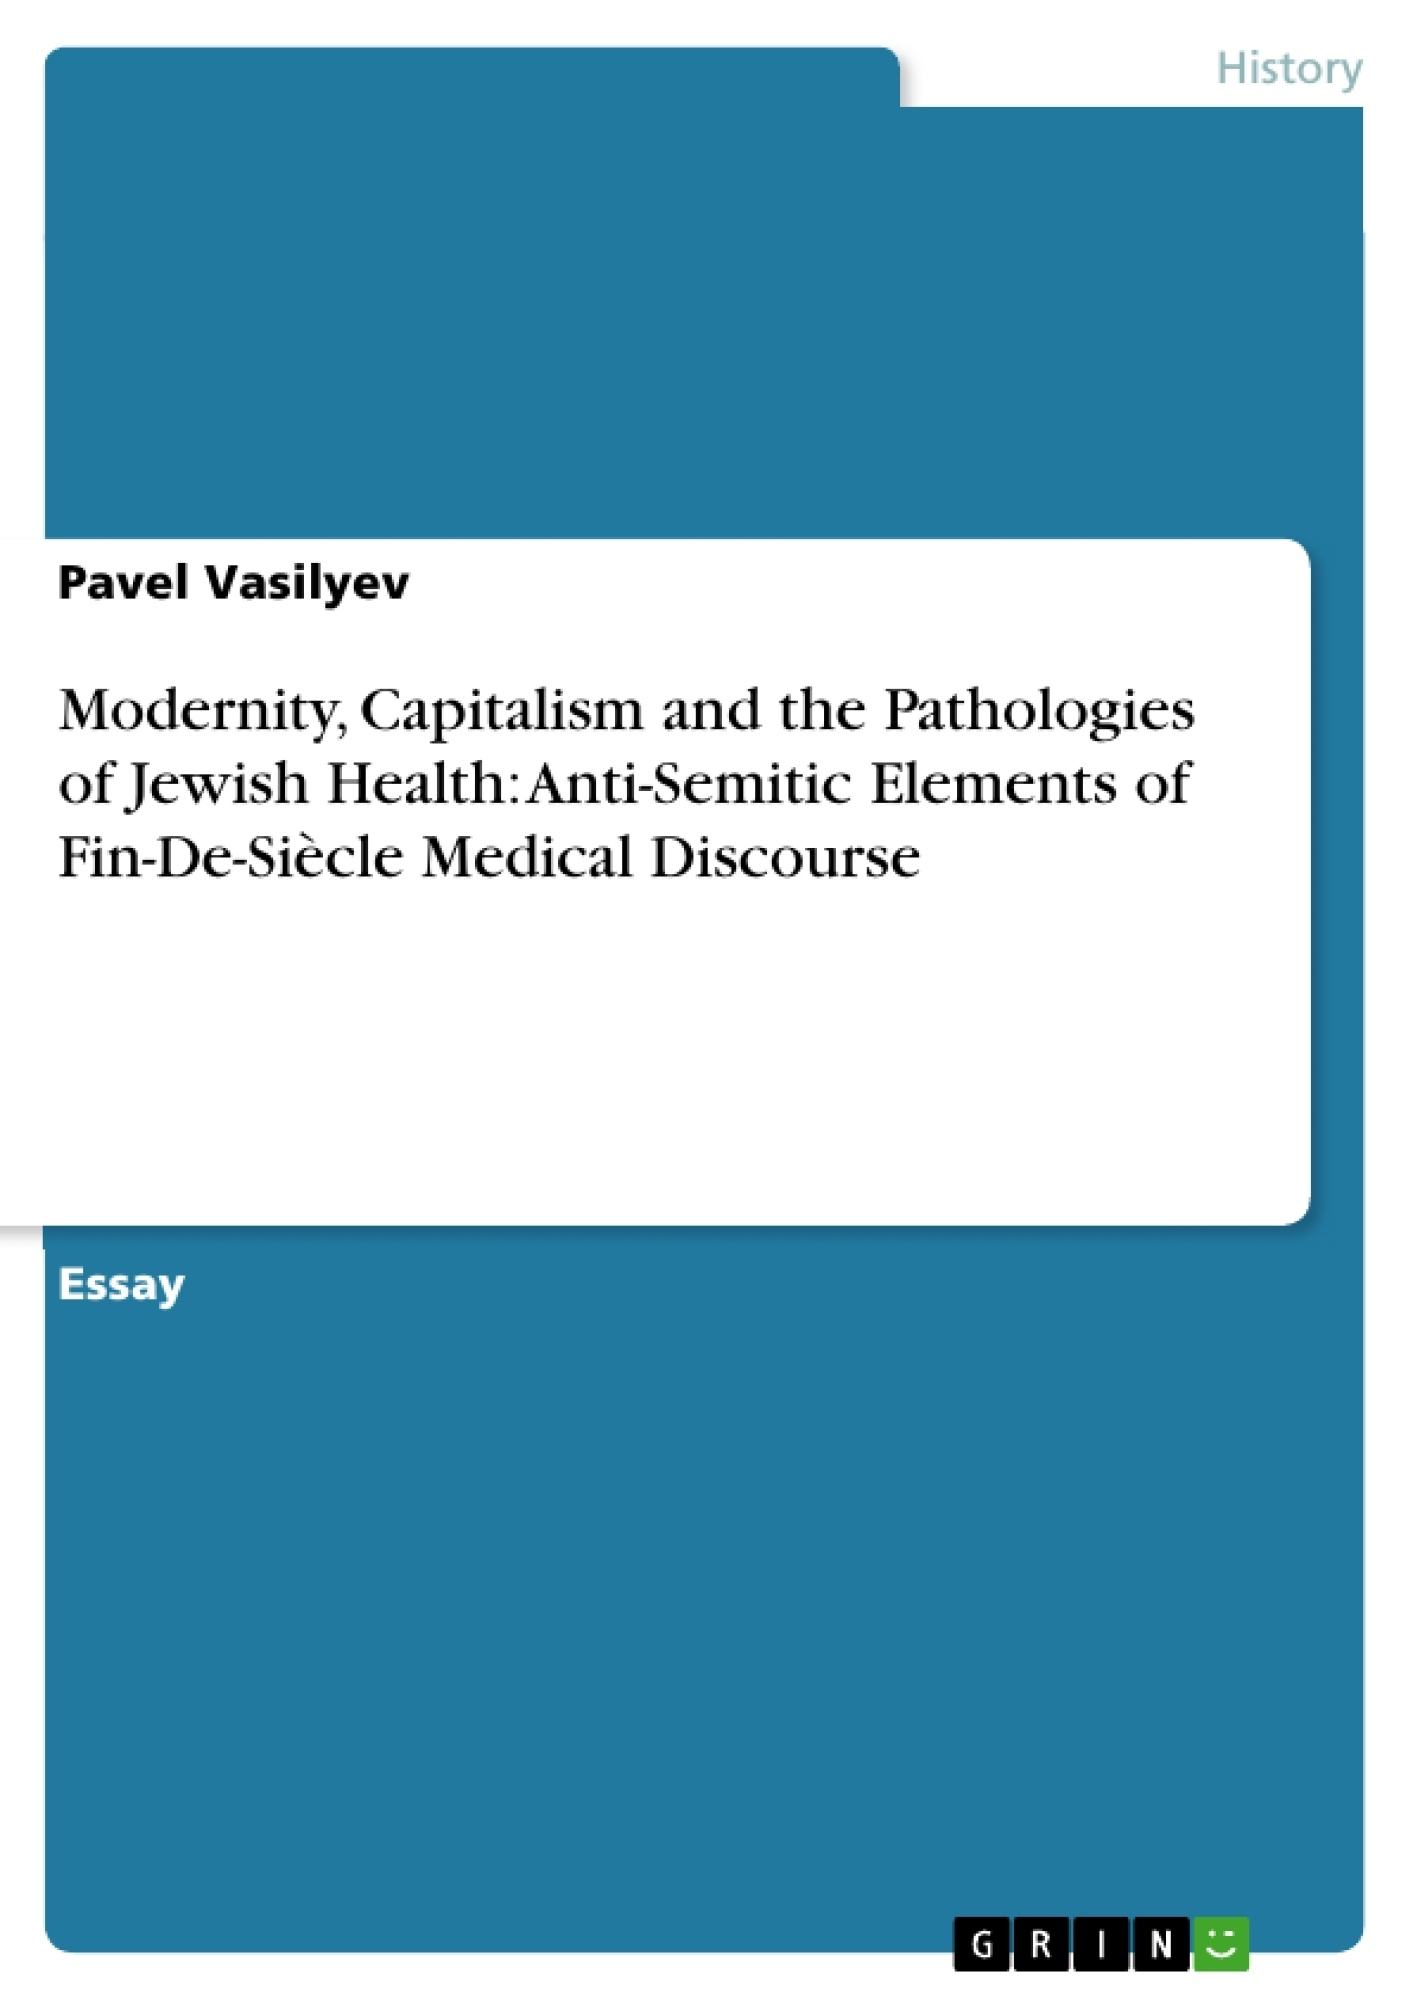 Title: Modernity, Capitalism and the Pathologies of Jewish Health: Anti-Semitic Elements of Fin-De-Siècle Medical Discourse